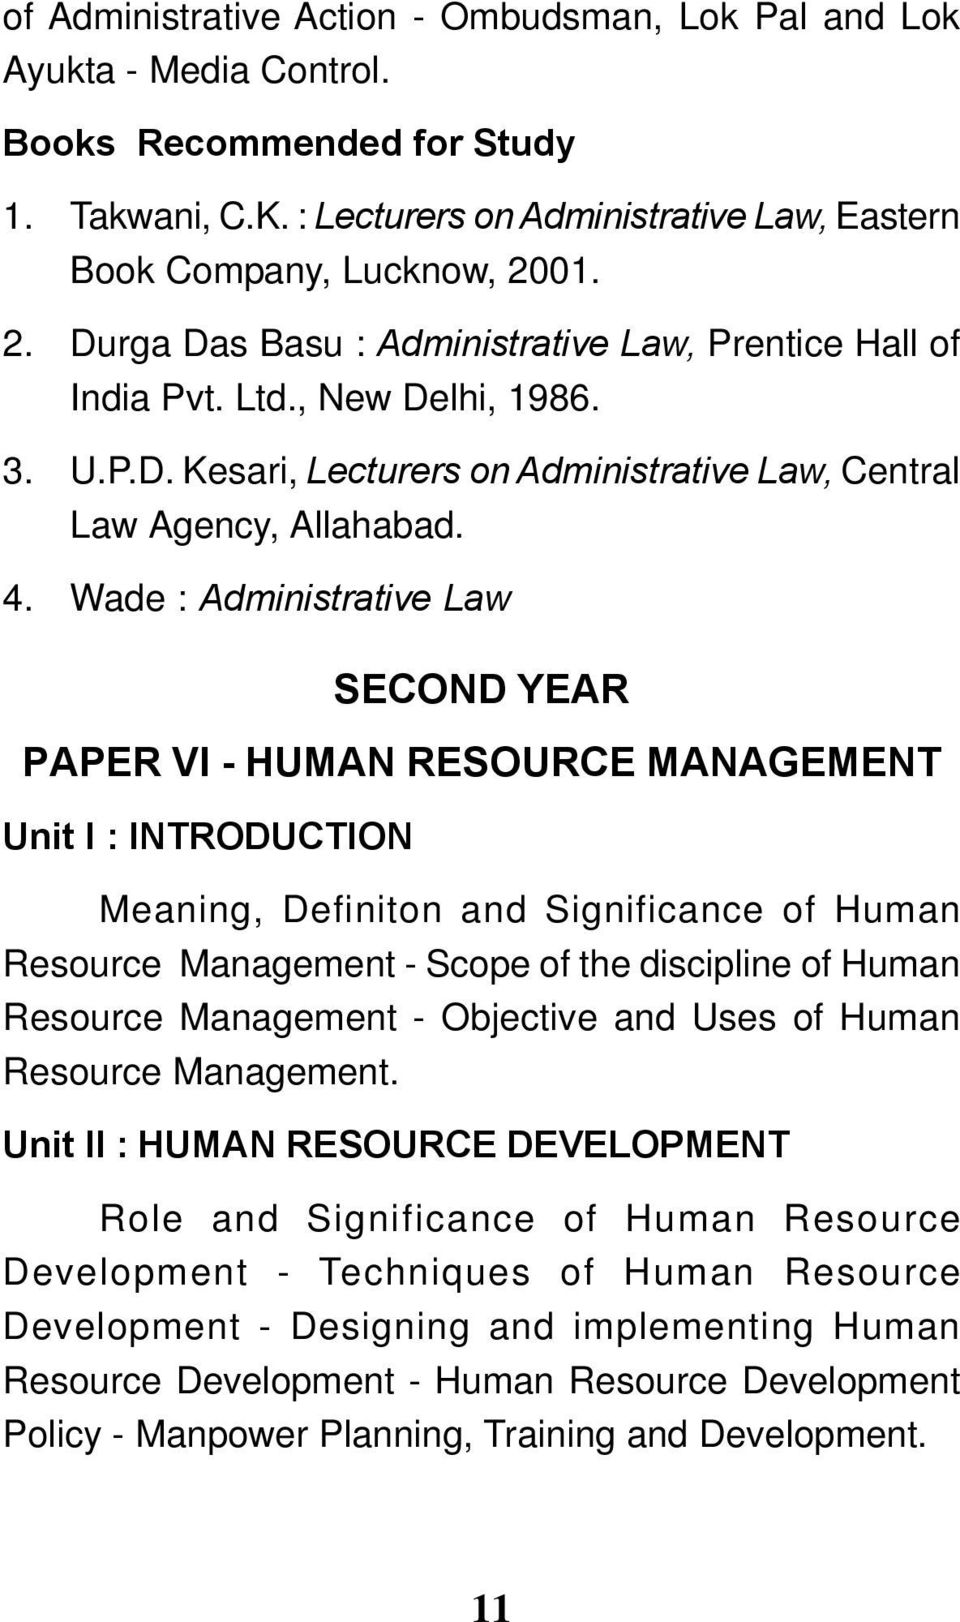 Wade : Administrative Law SECOND YEAR PAPER VI - HUMAN RESOURCE MANAGEMENT Meaning, Definiton and Significance of Human Resource Management - Scope of the discipline of Human Resource Management -